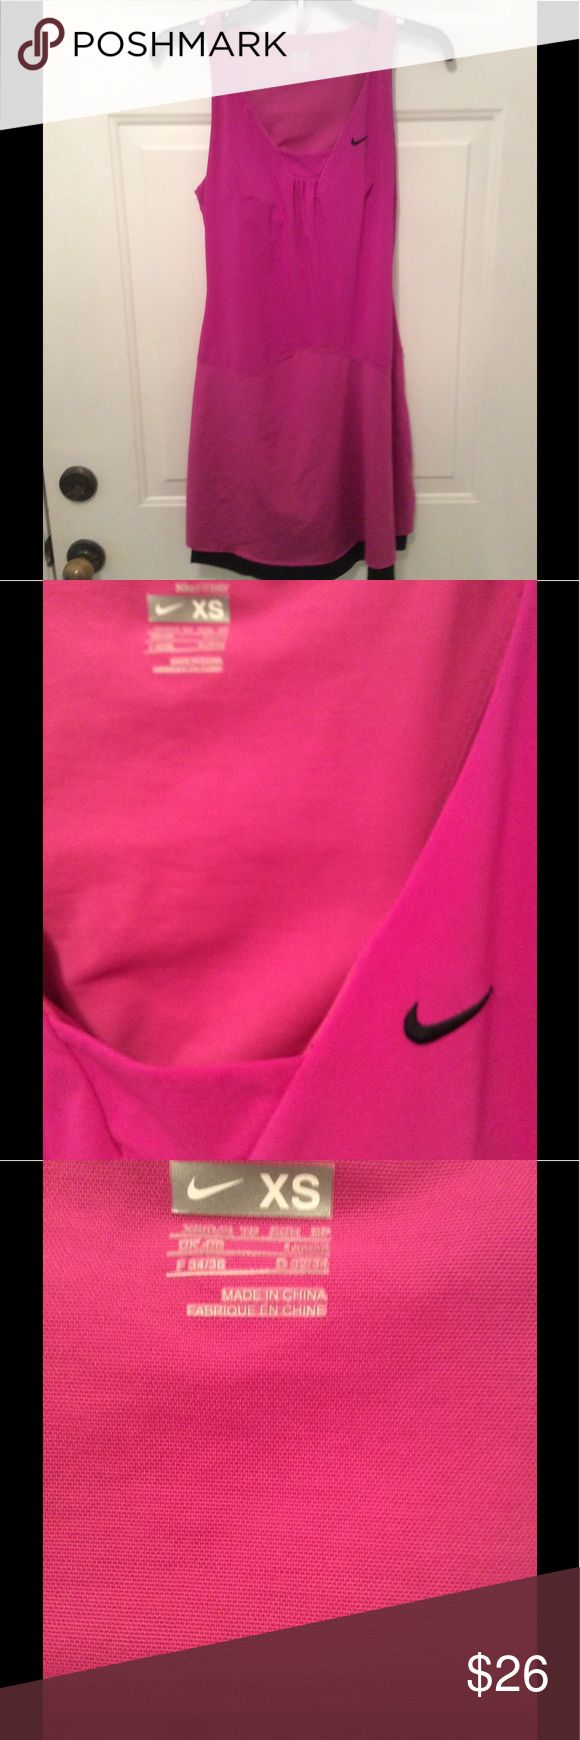 🌺NIKE FIT DRY DRESS WITH BRA BUILT IN-SPORTY 🌺NICE SPORTY NIKE DRESS. WEAR FOR SPORTS AND YOU WILL BE VERY COMFORTABLE. It has a built in bra. It stretches to your moves. You are going to love it. NIKE Dresses